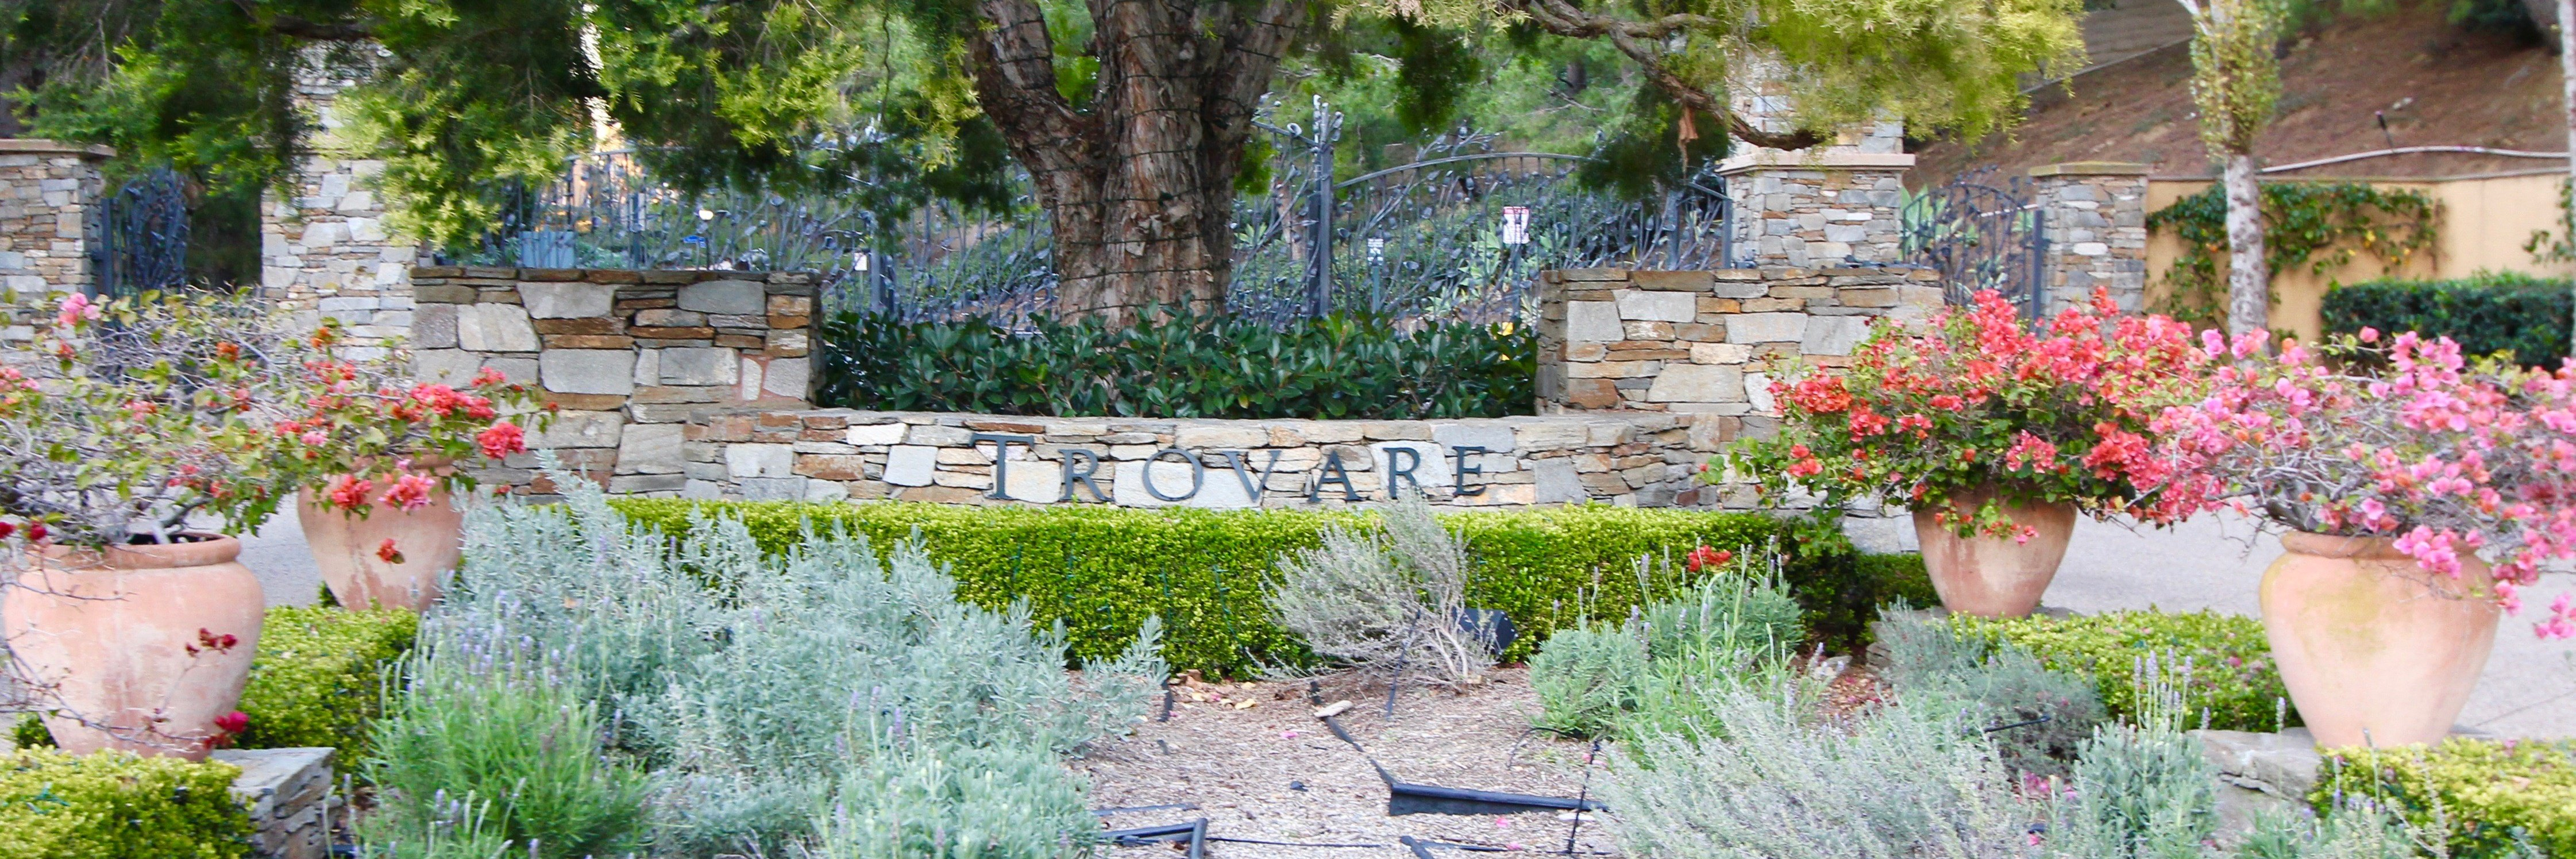 Trovare is a gated and private spanish style townhome community in Newport Coast CA